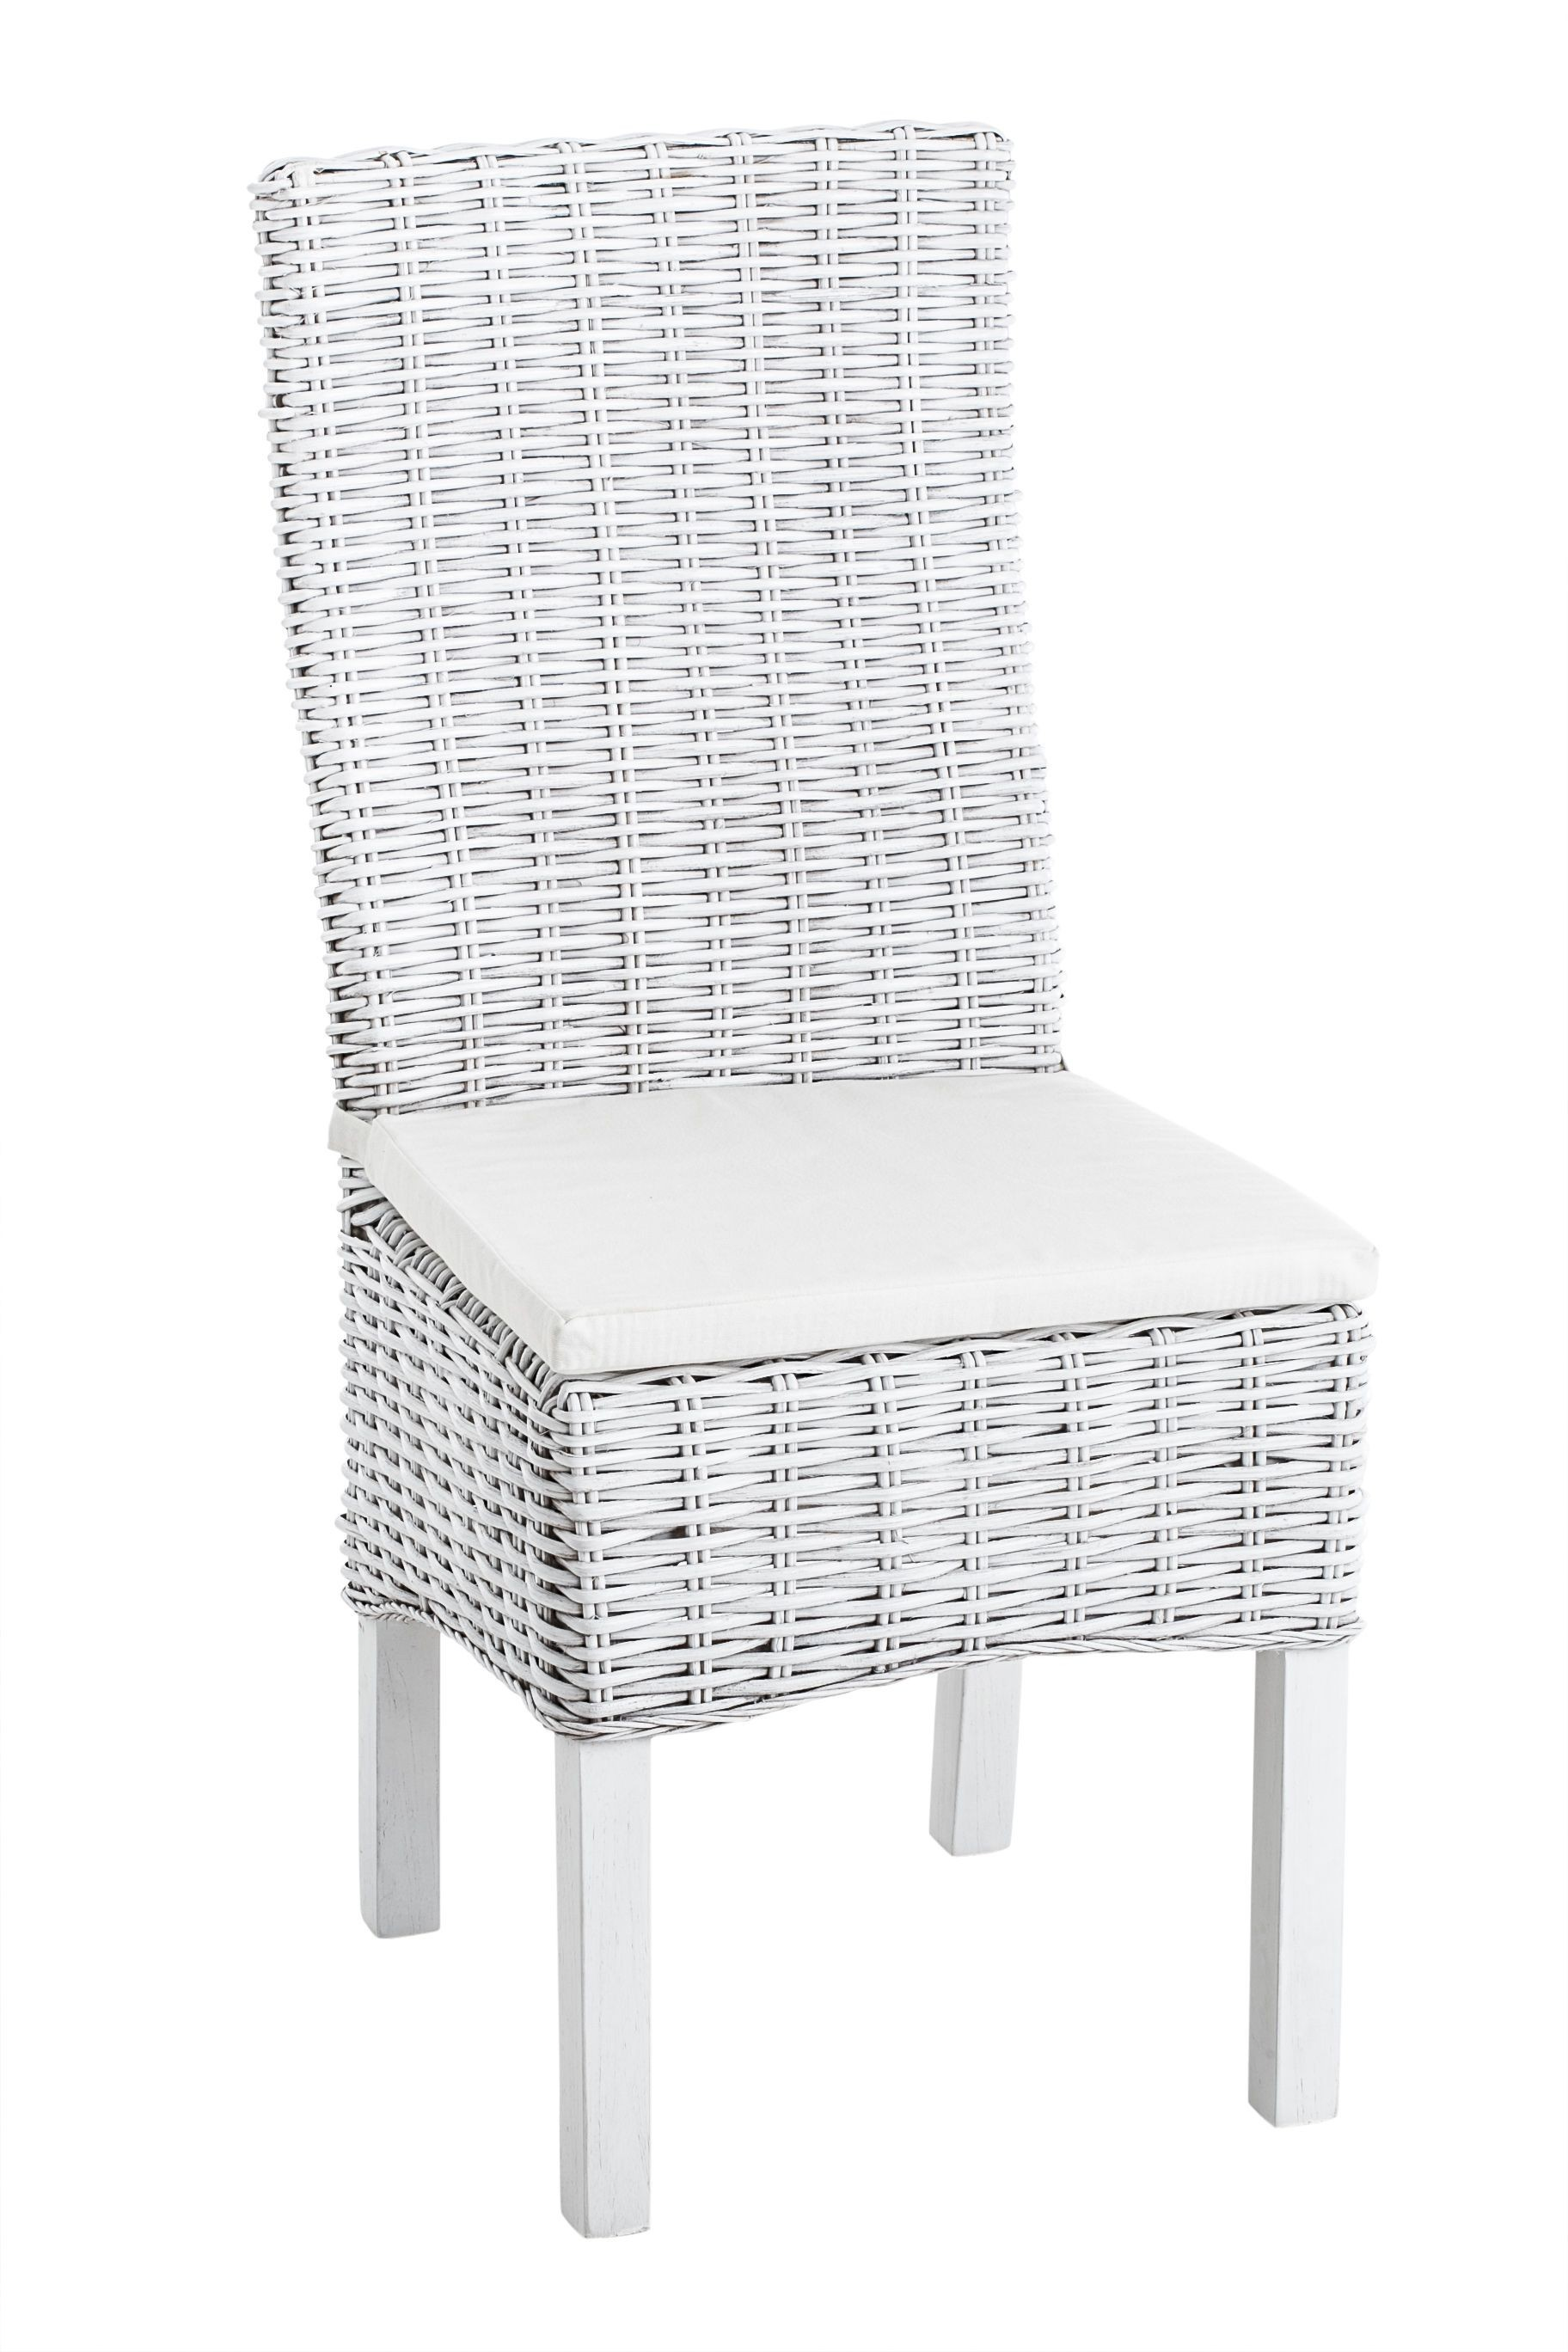 Awesome chaise rotin blanc mastic mary lma pas cher source for Chaise industrielle pas chere